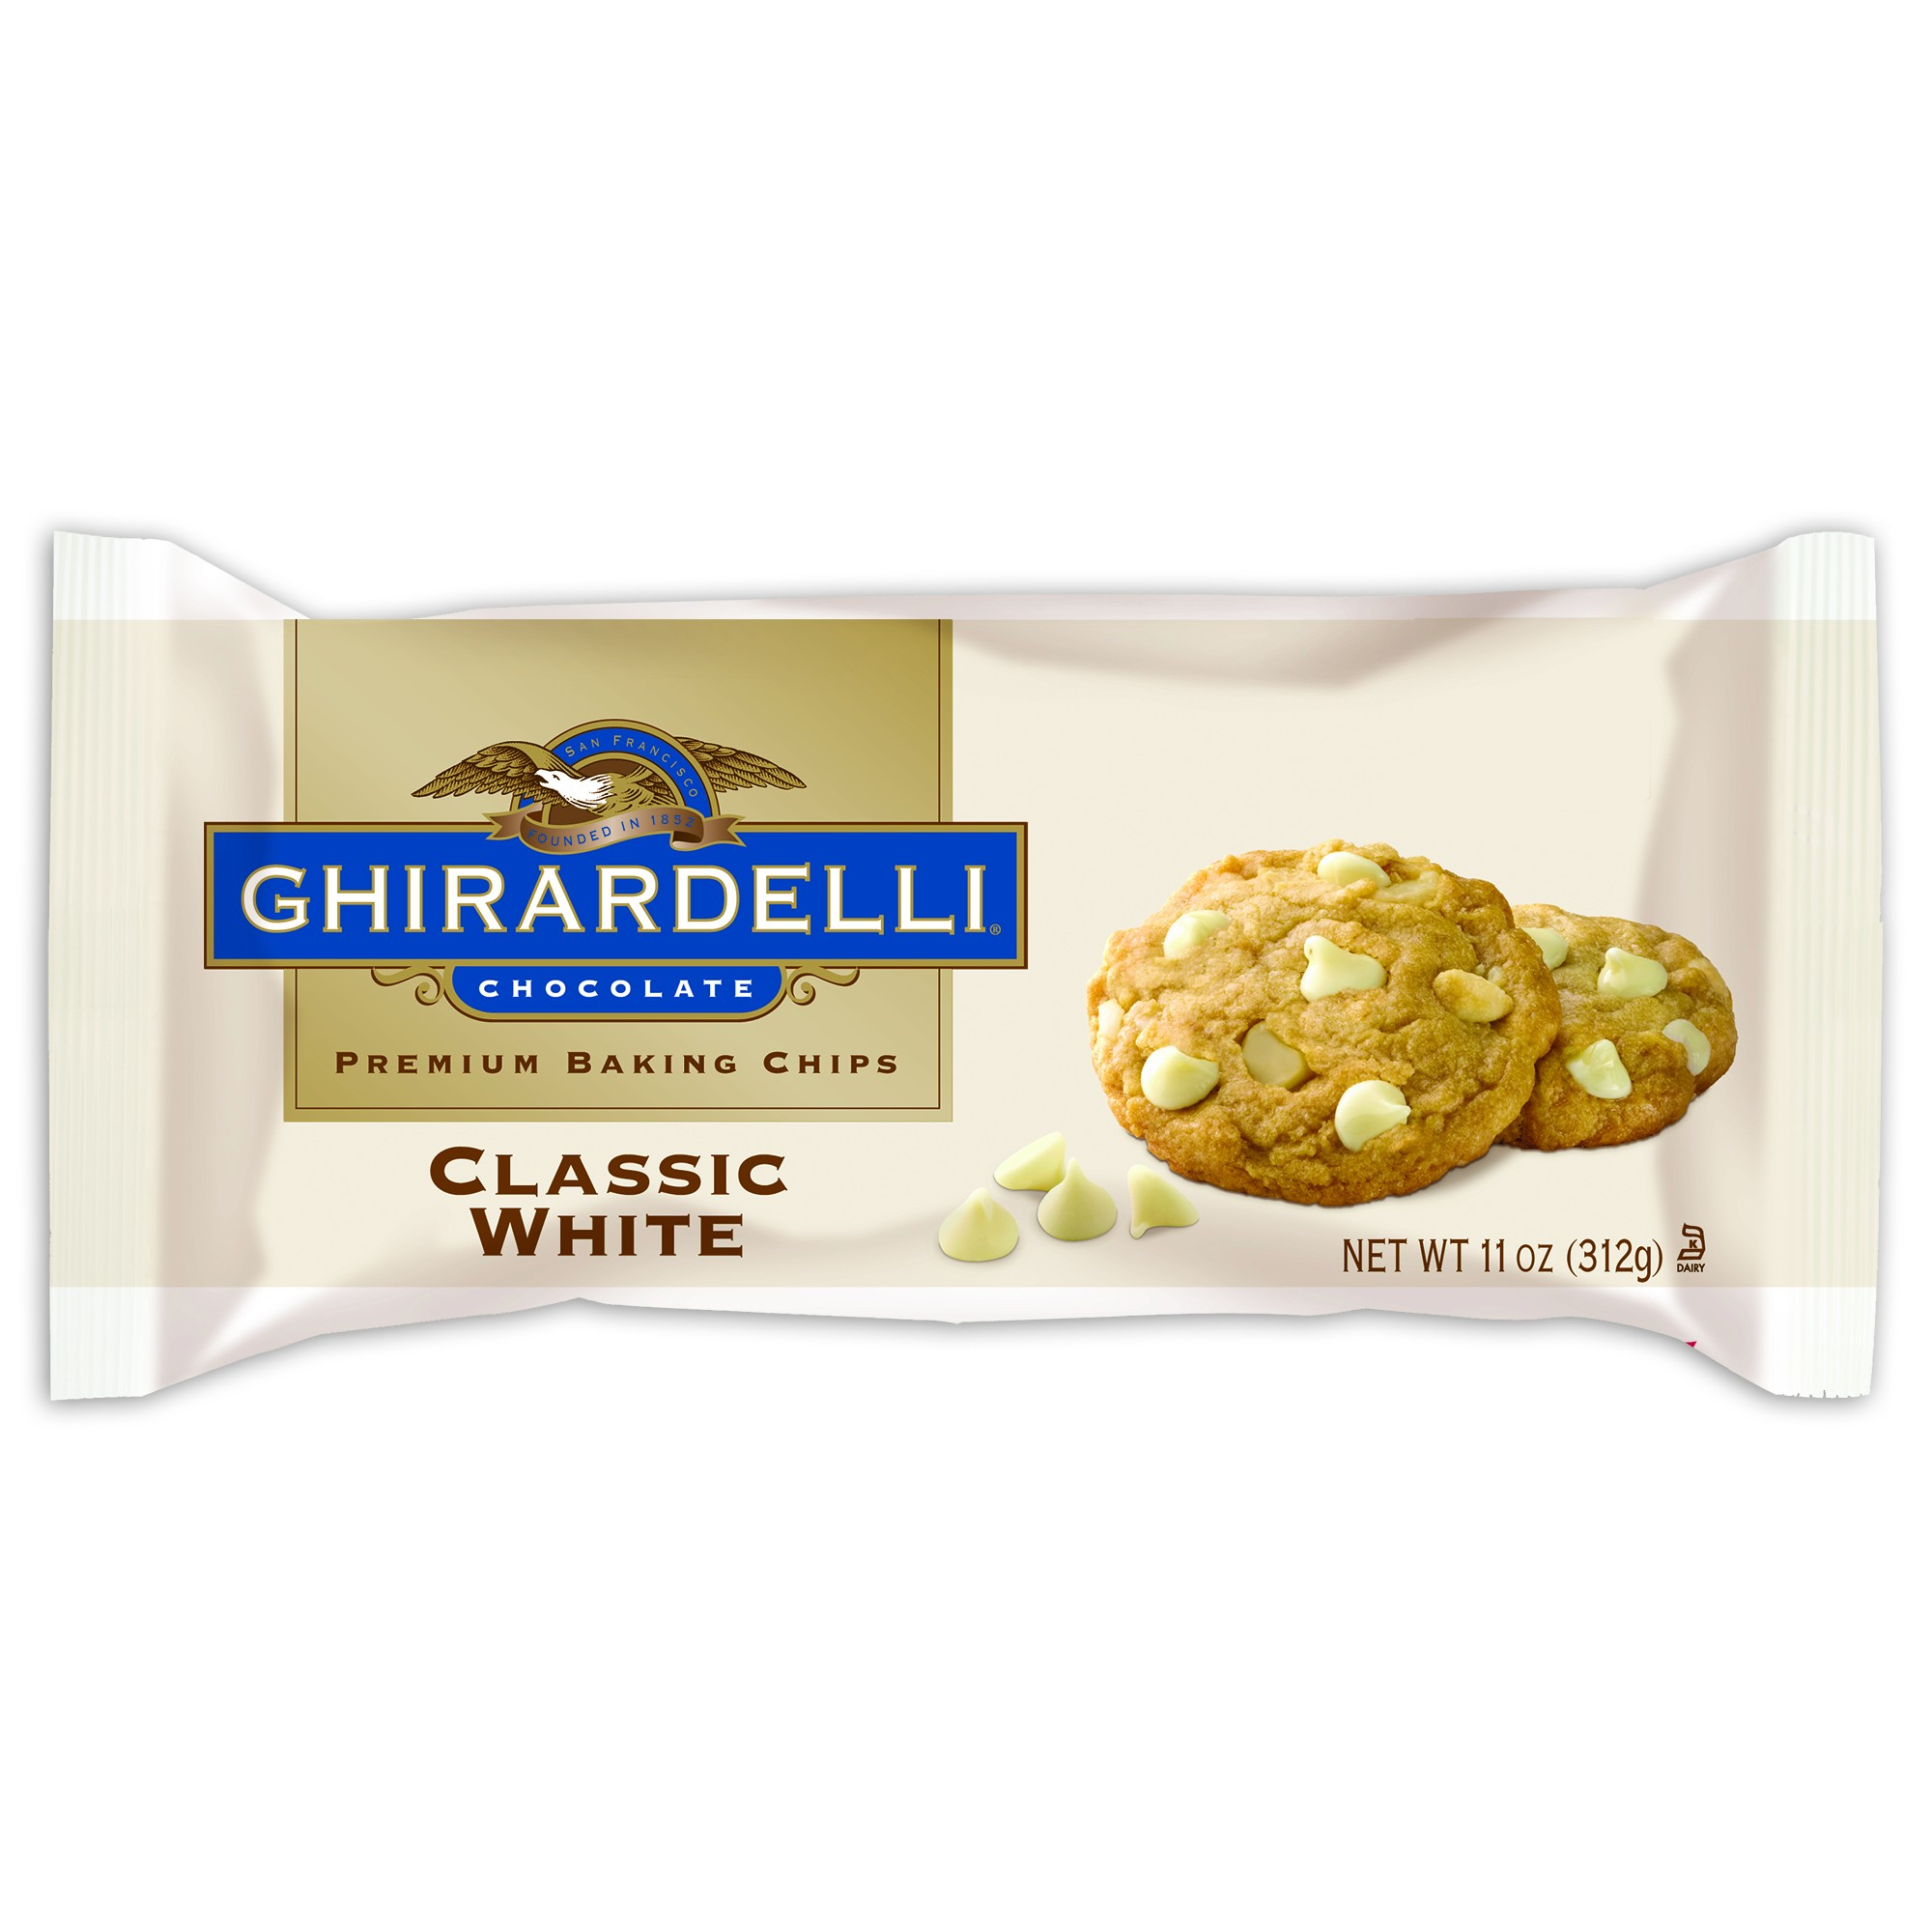 Ghirardelli white chip (312g)